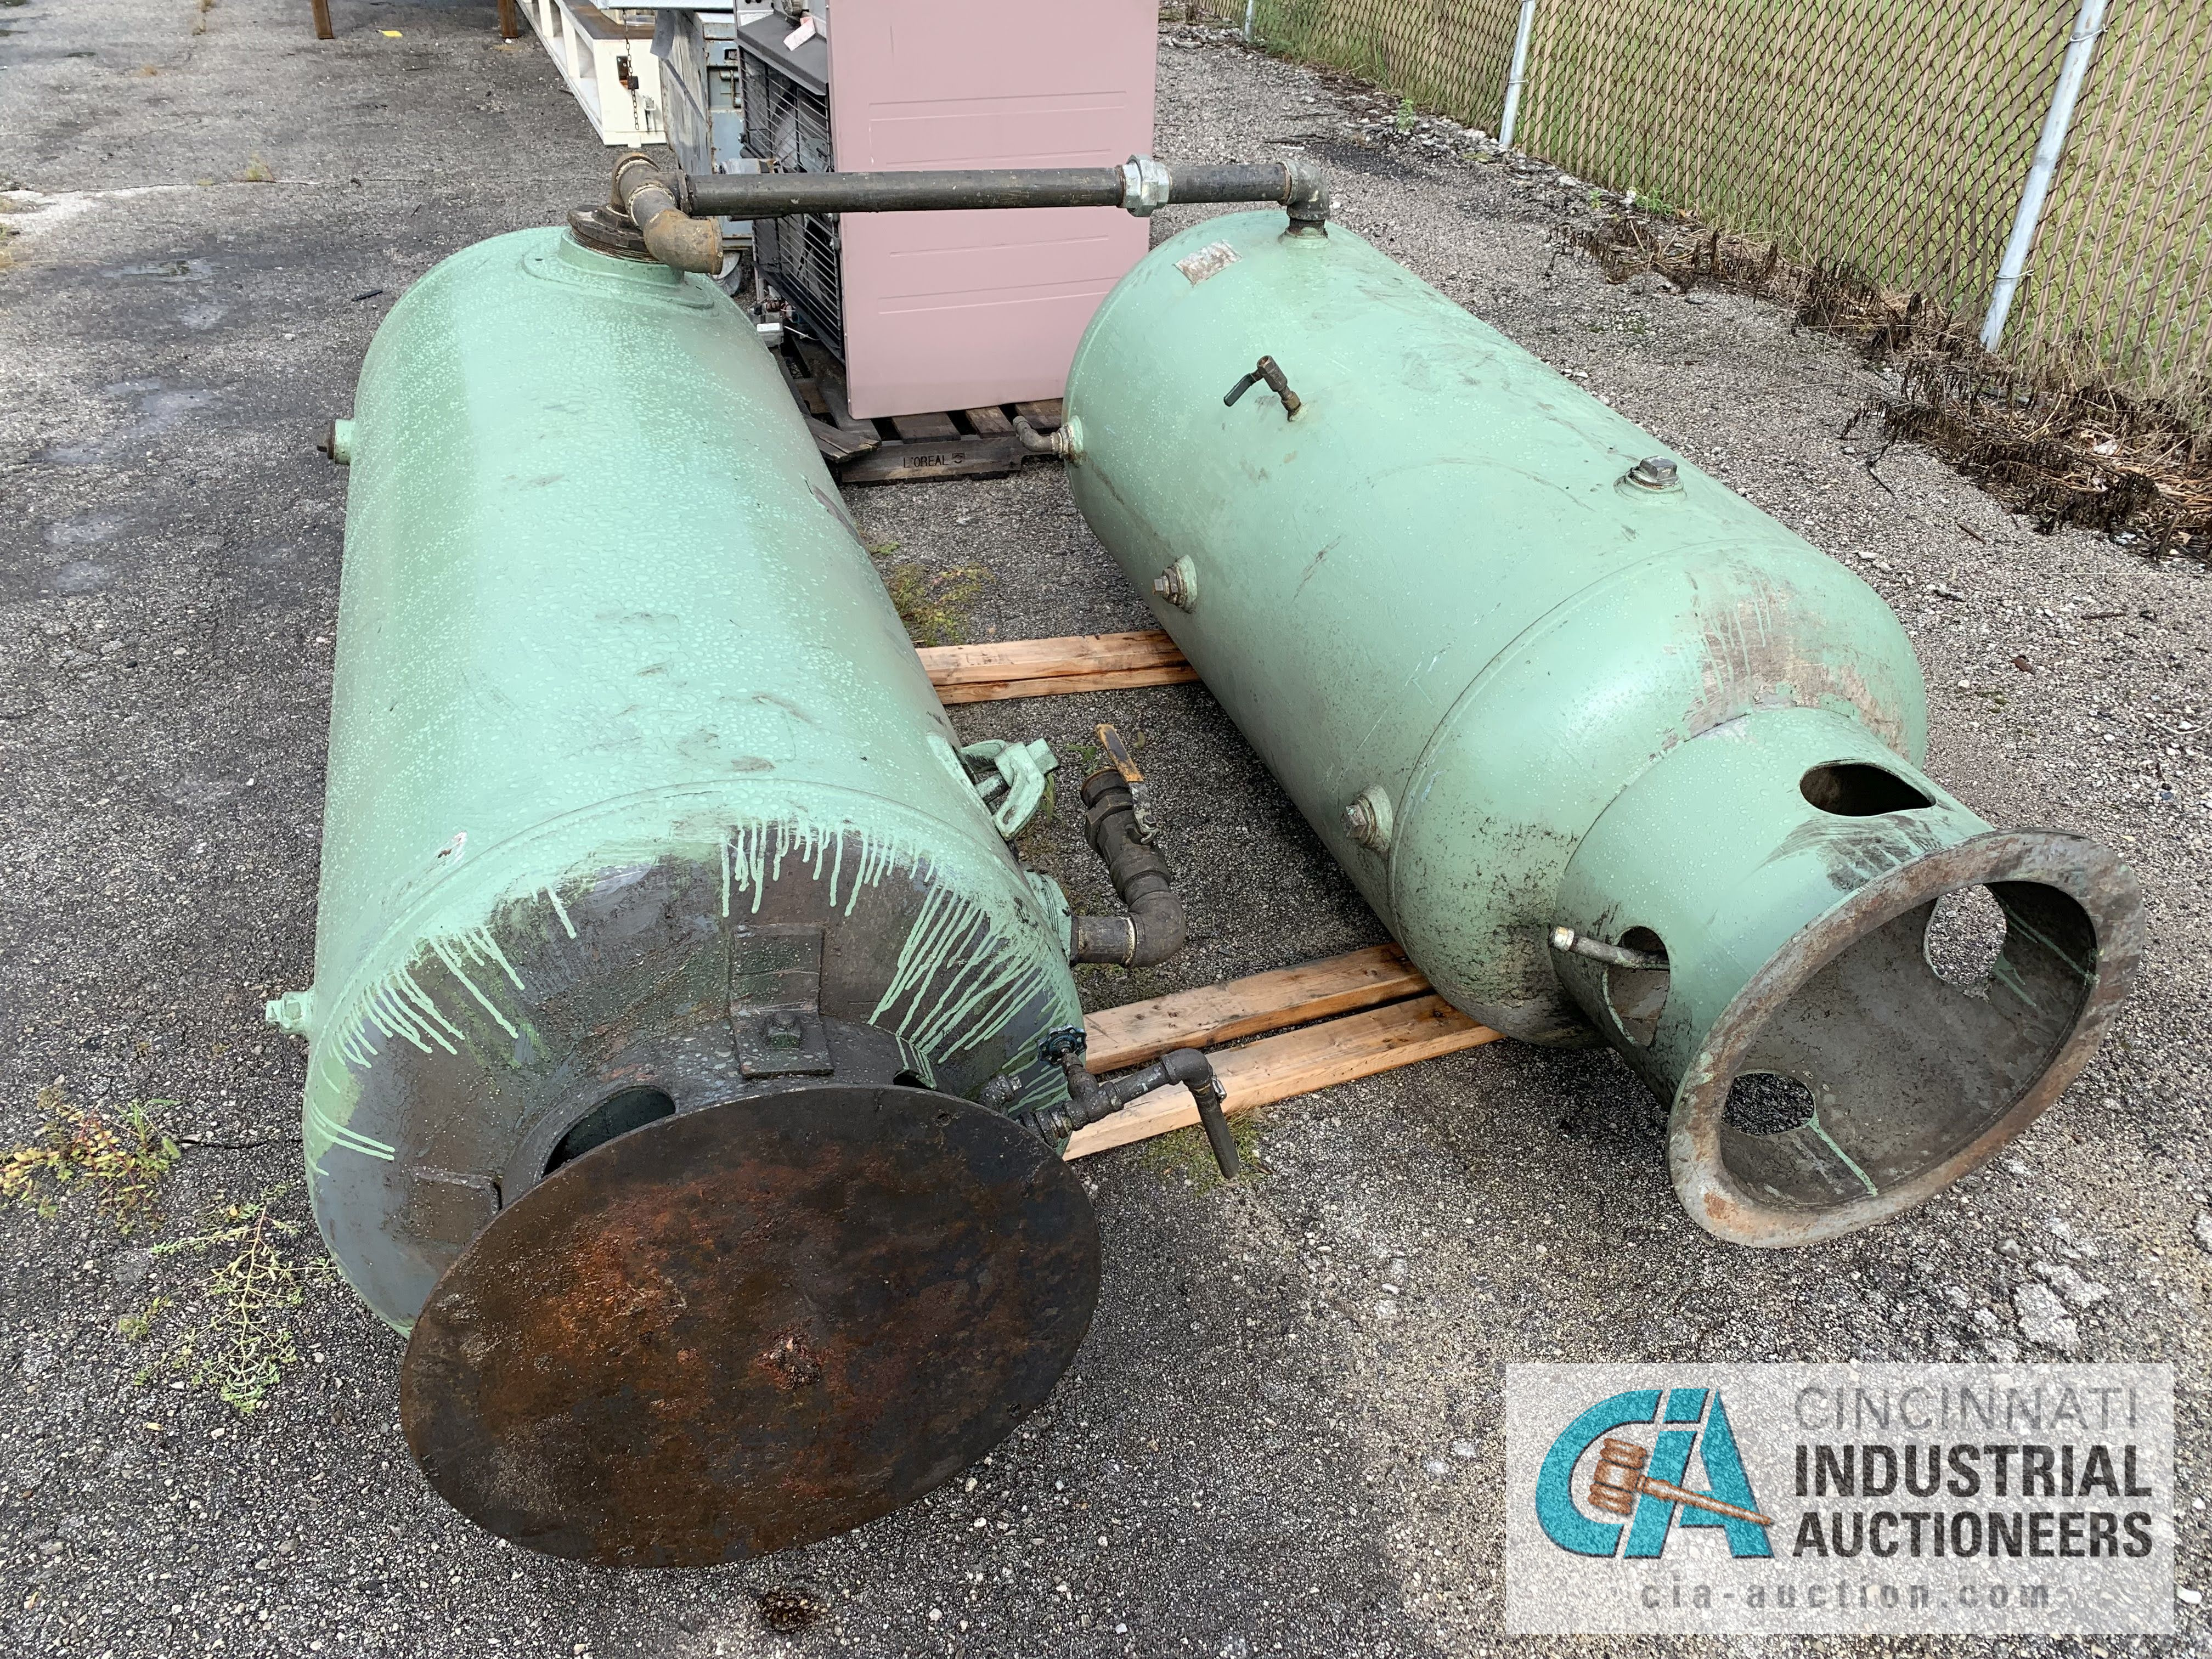 CHICAGO STEEL AIR TANK - $20.00 Rigging Fee Due to Onsite Rigger - Located in Holland, Ohio - Image 2 of 3